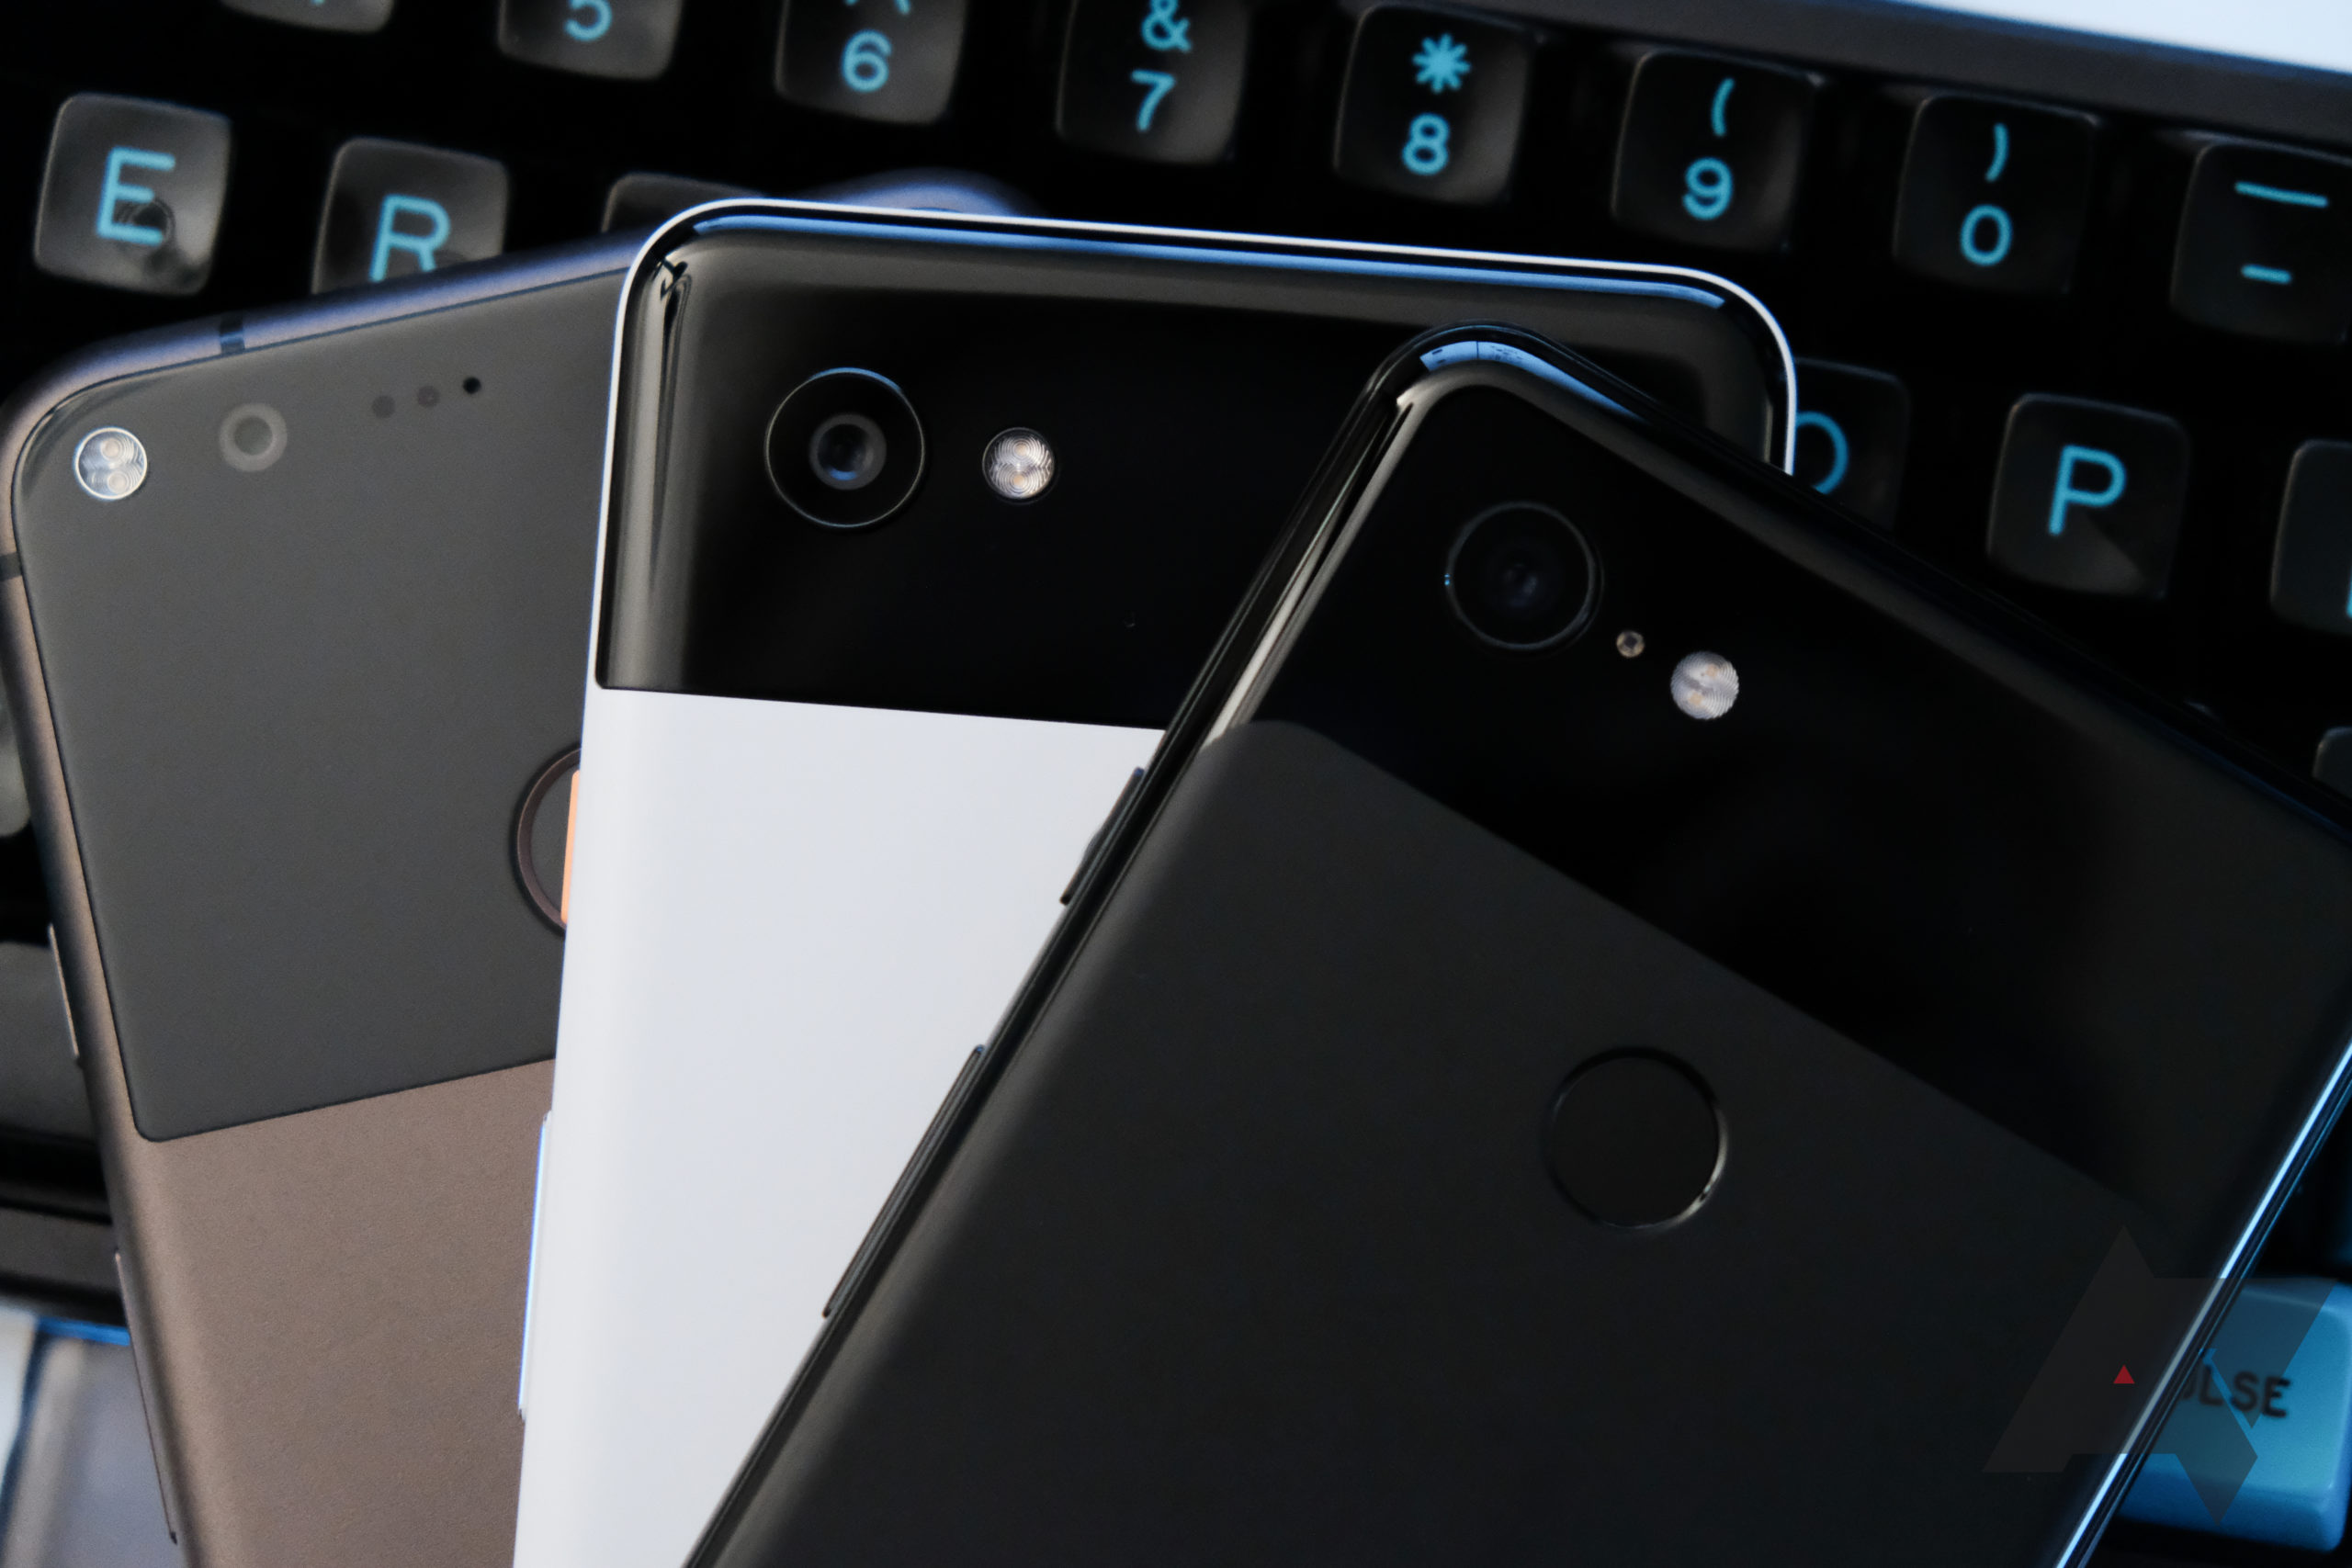 Many still affected by long-standing Android 10 update issue that breaks Pixel sensors